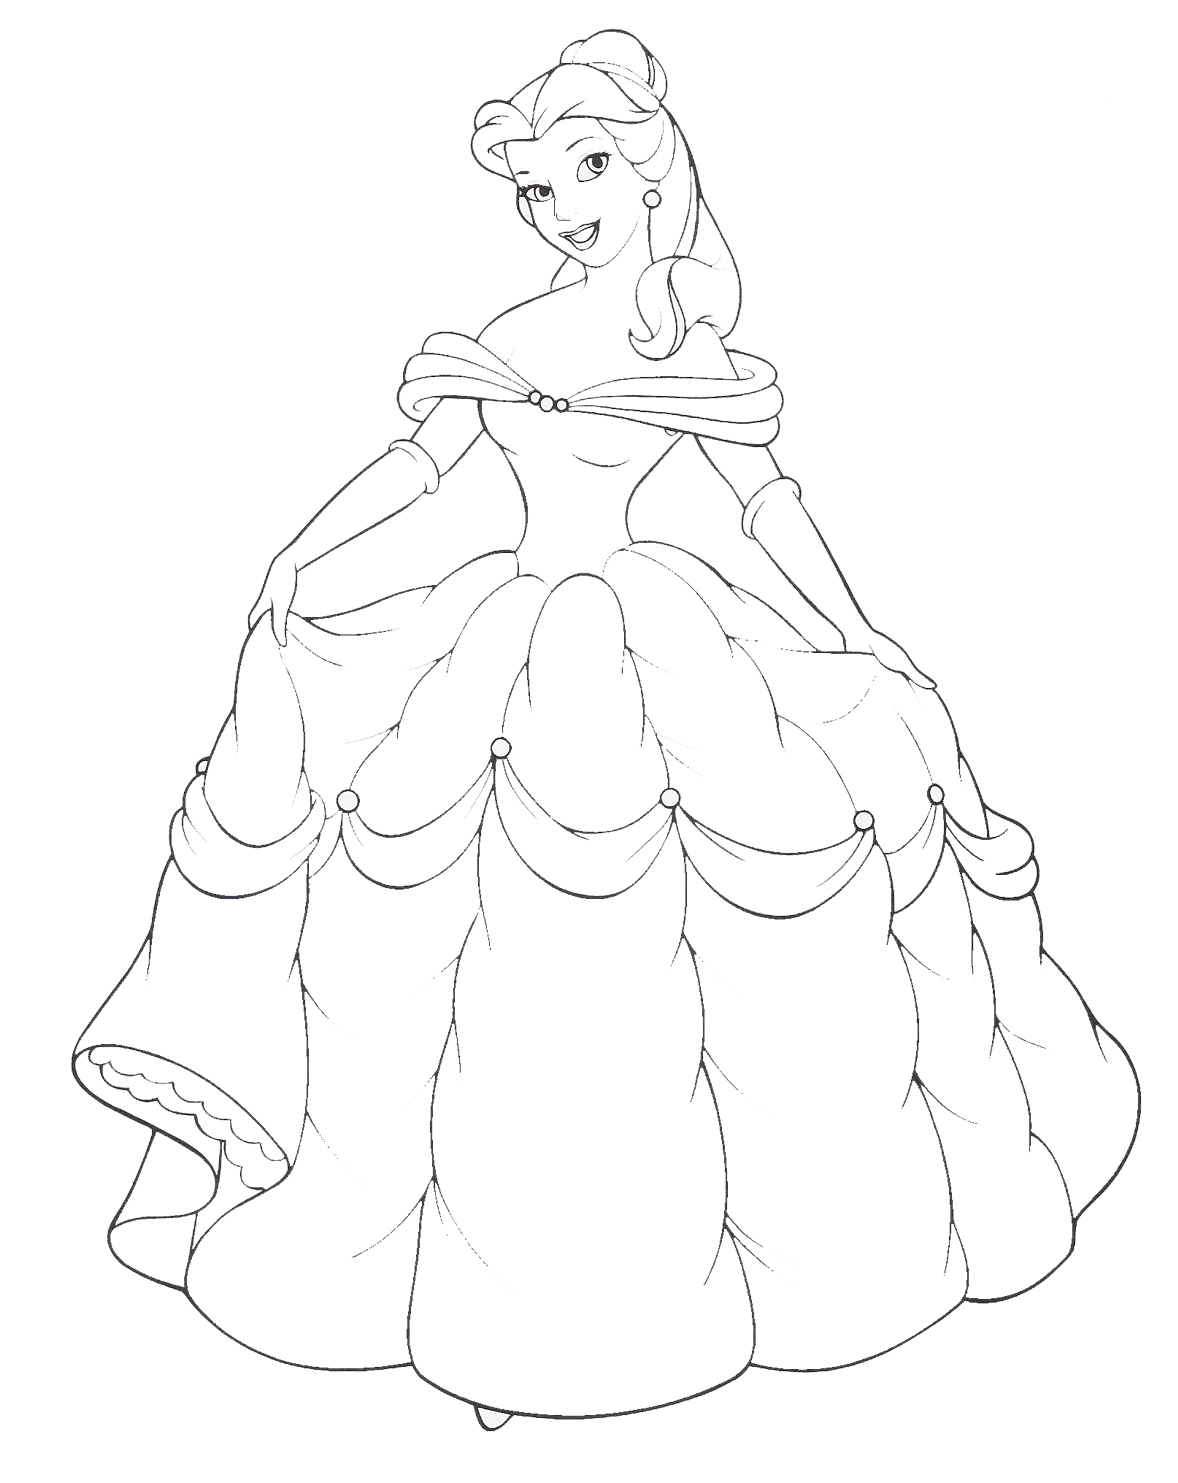 Coloring Pages Disney Princess Belle : Disney princess belle and her gown coloring sheet